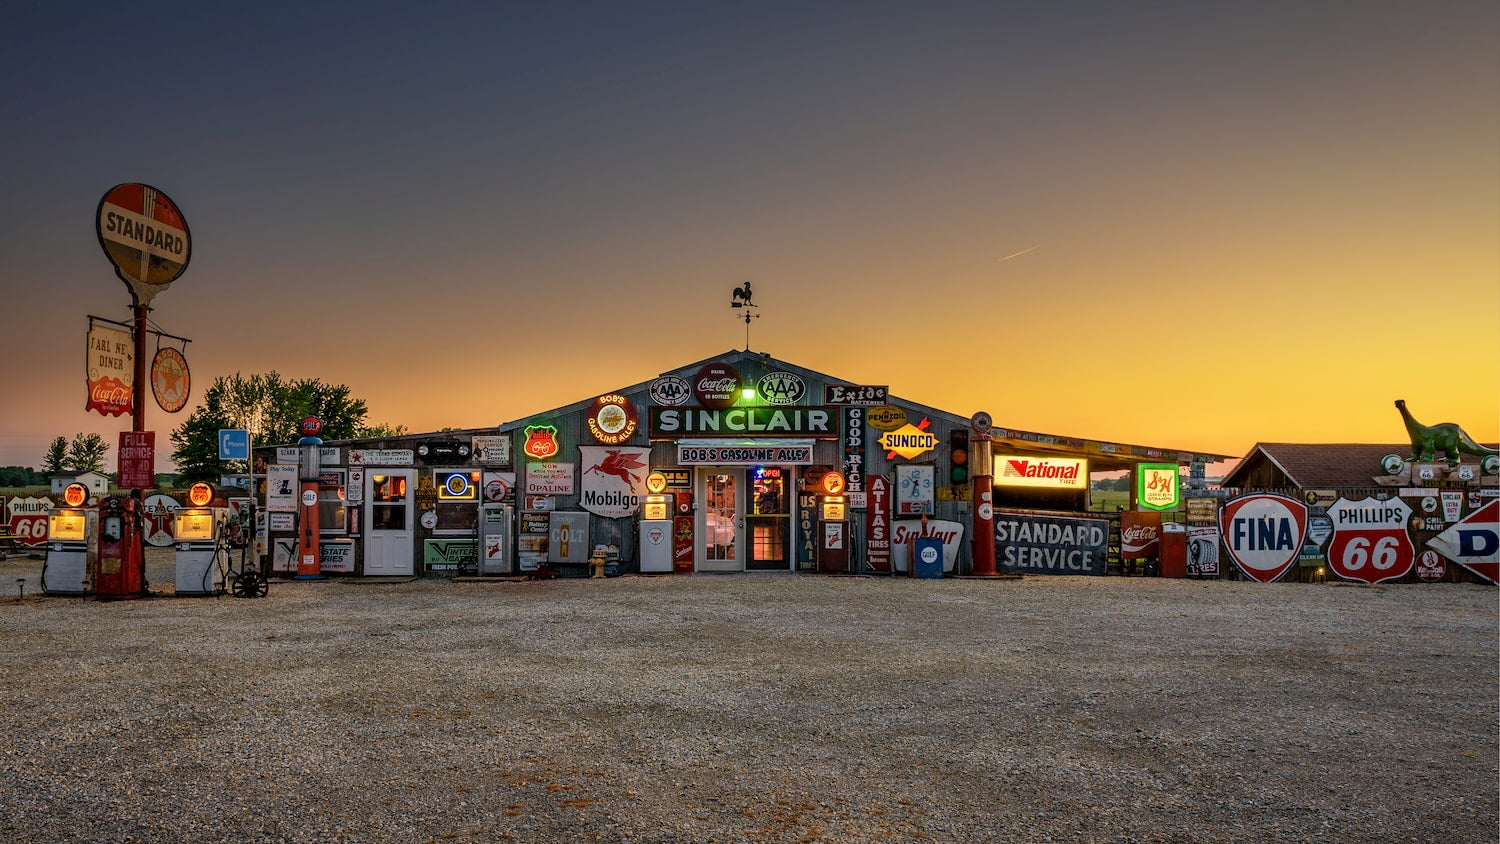 exterior of a gasoline station museum on route 66